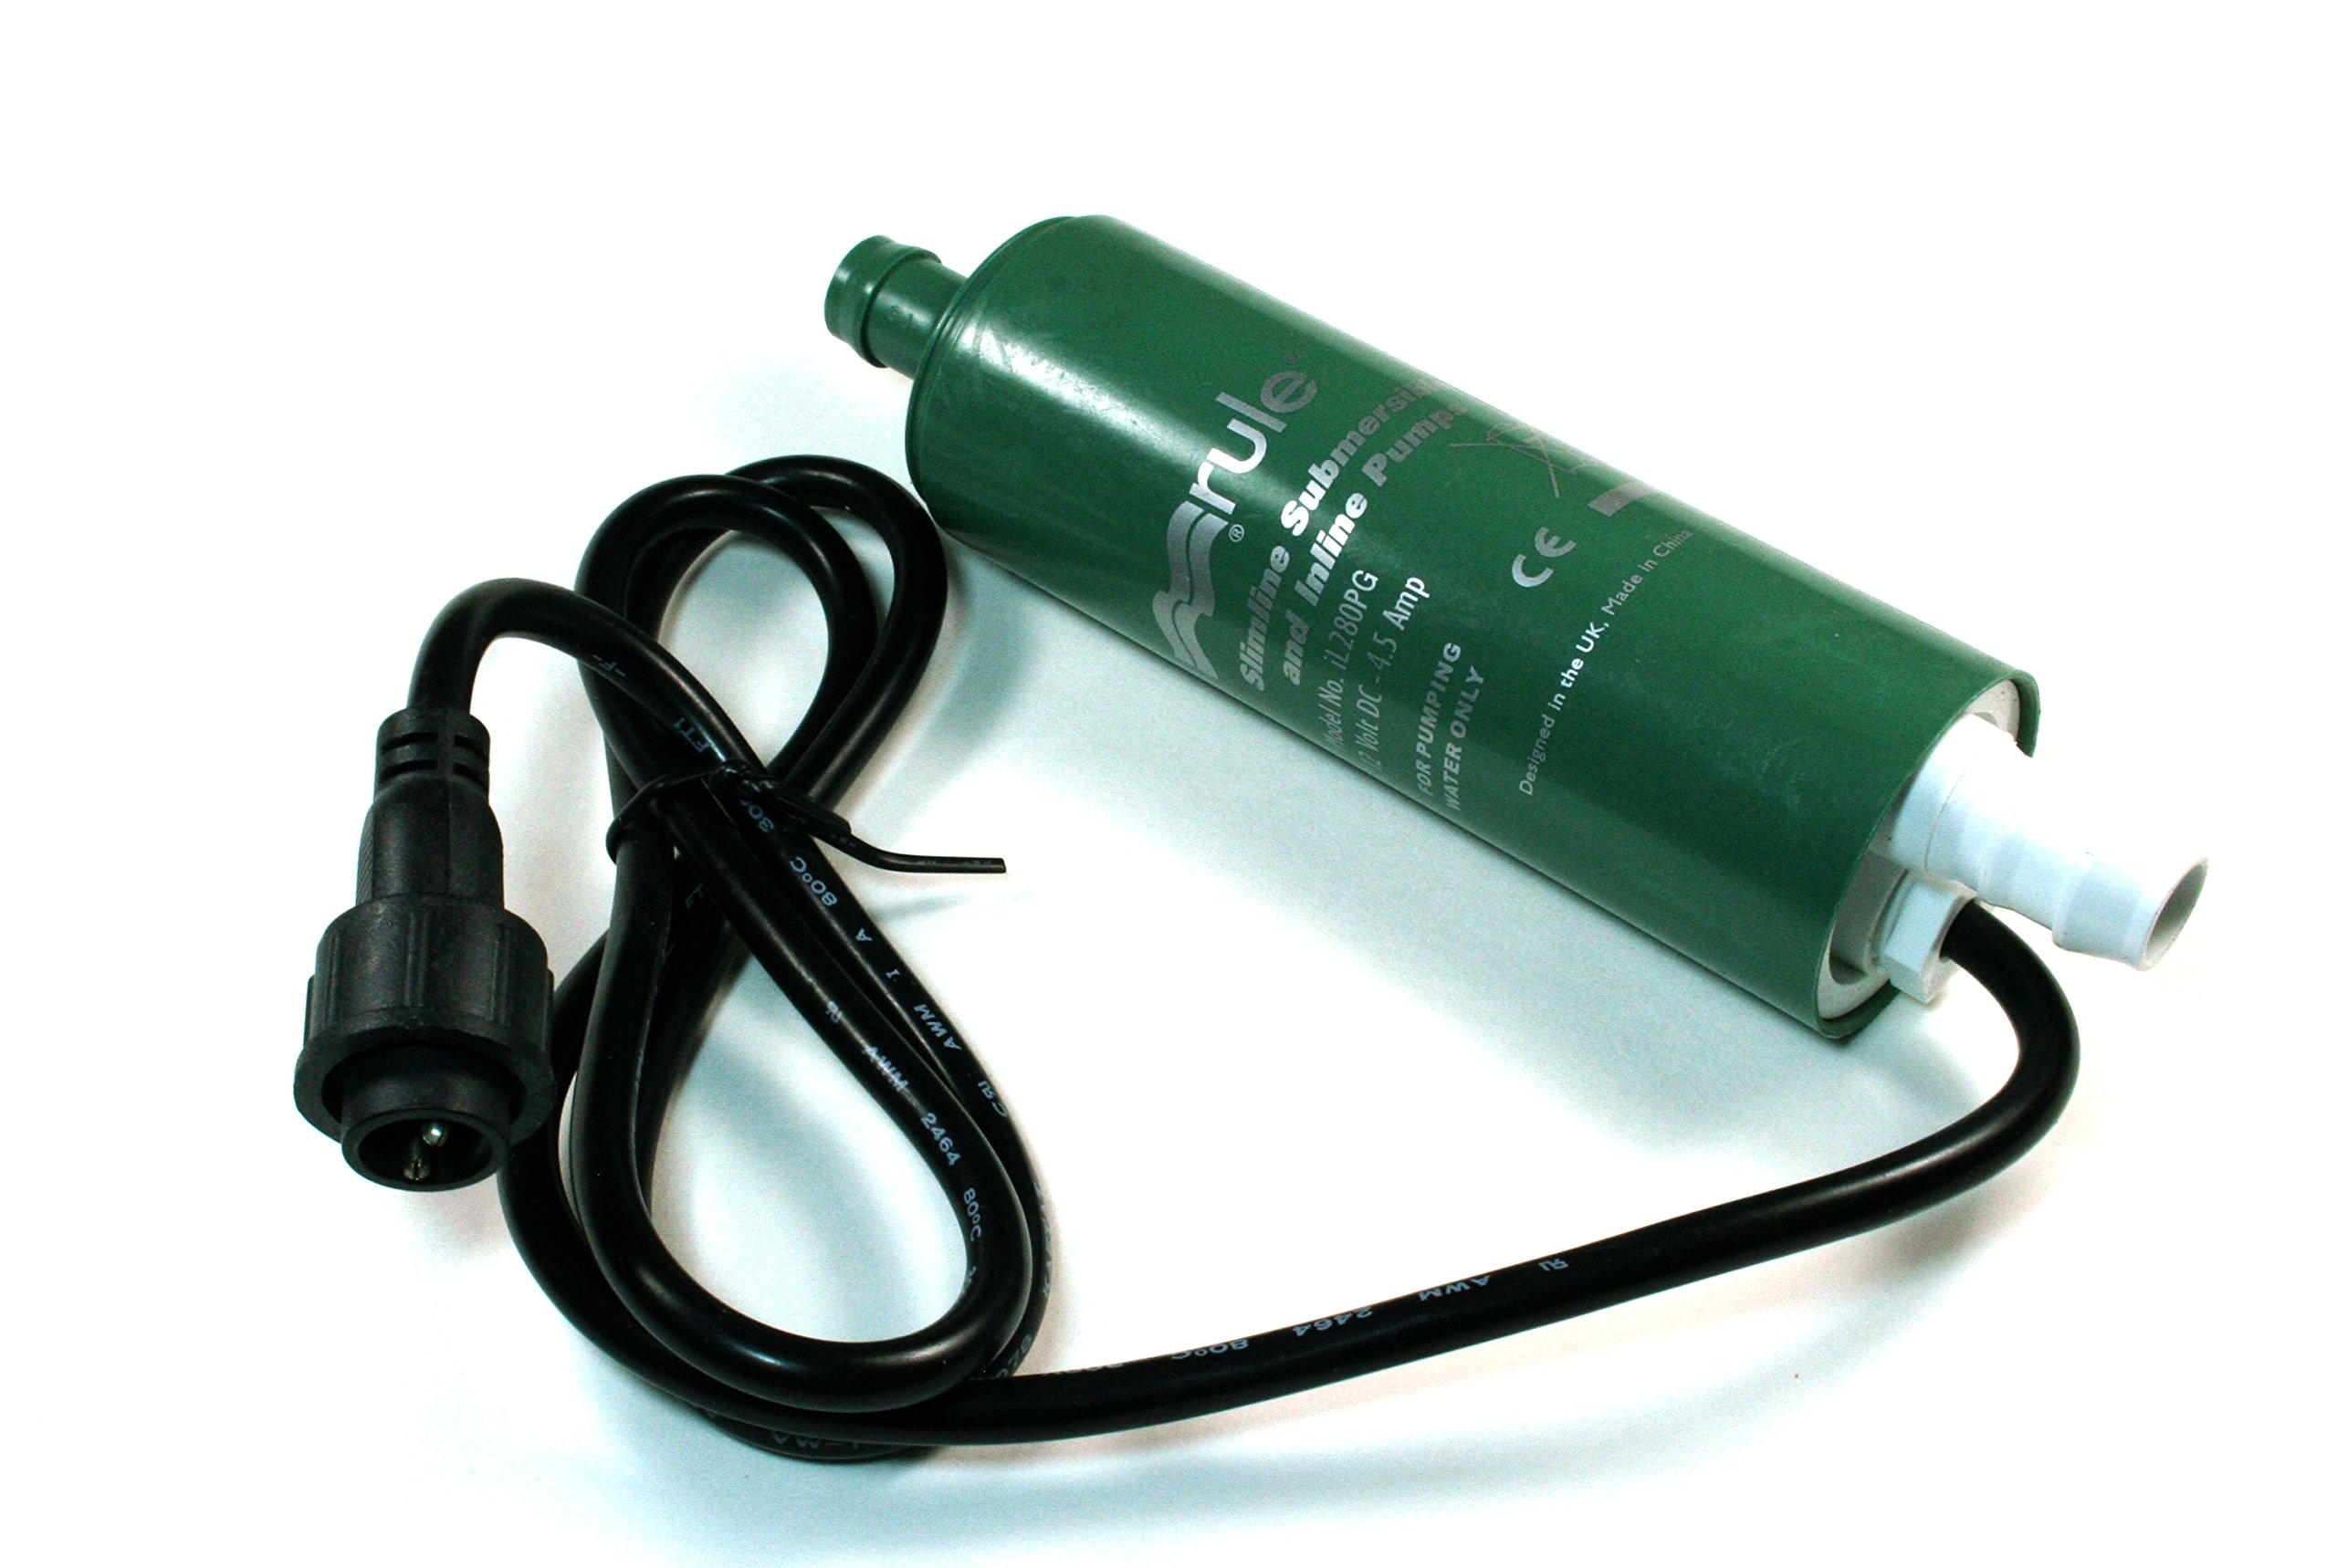 (Bin Y) Rule iL280PG In-Line Submersible Water Pump - 12 V DC - 280 GPH - 1080 LPH - 14 PSI